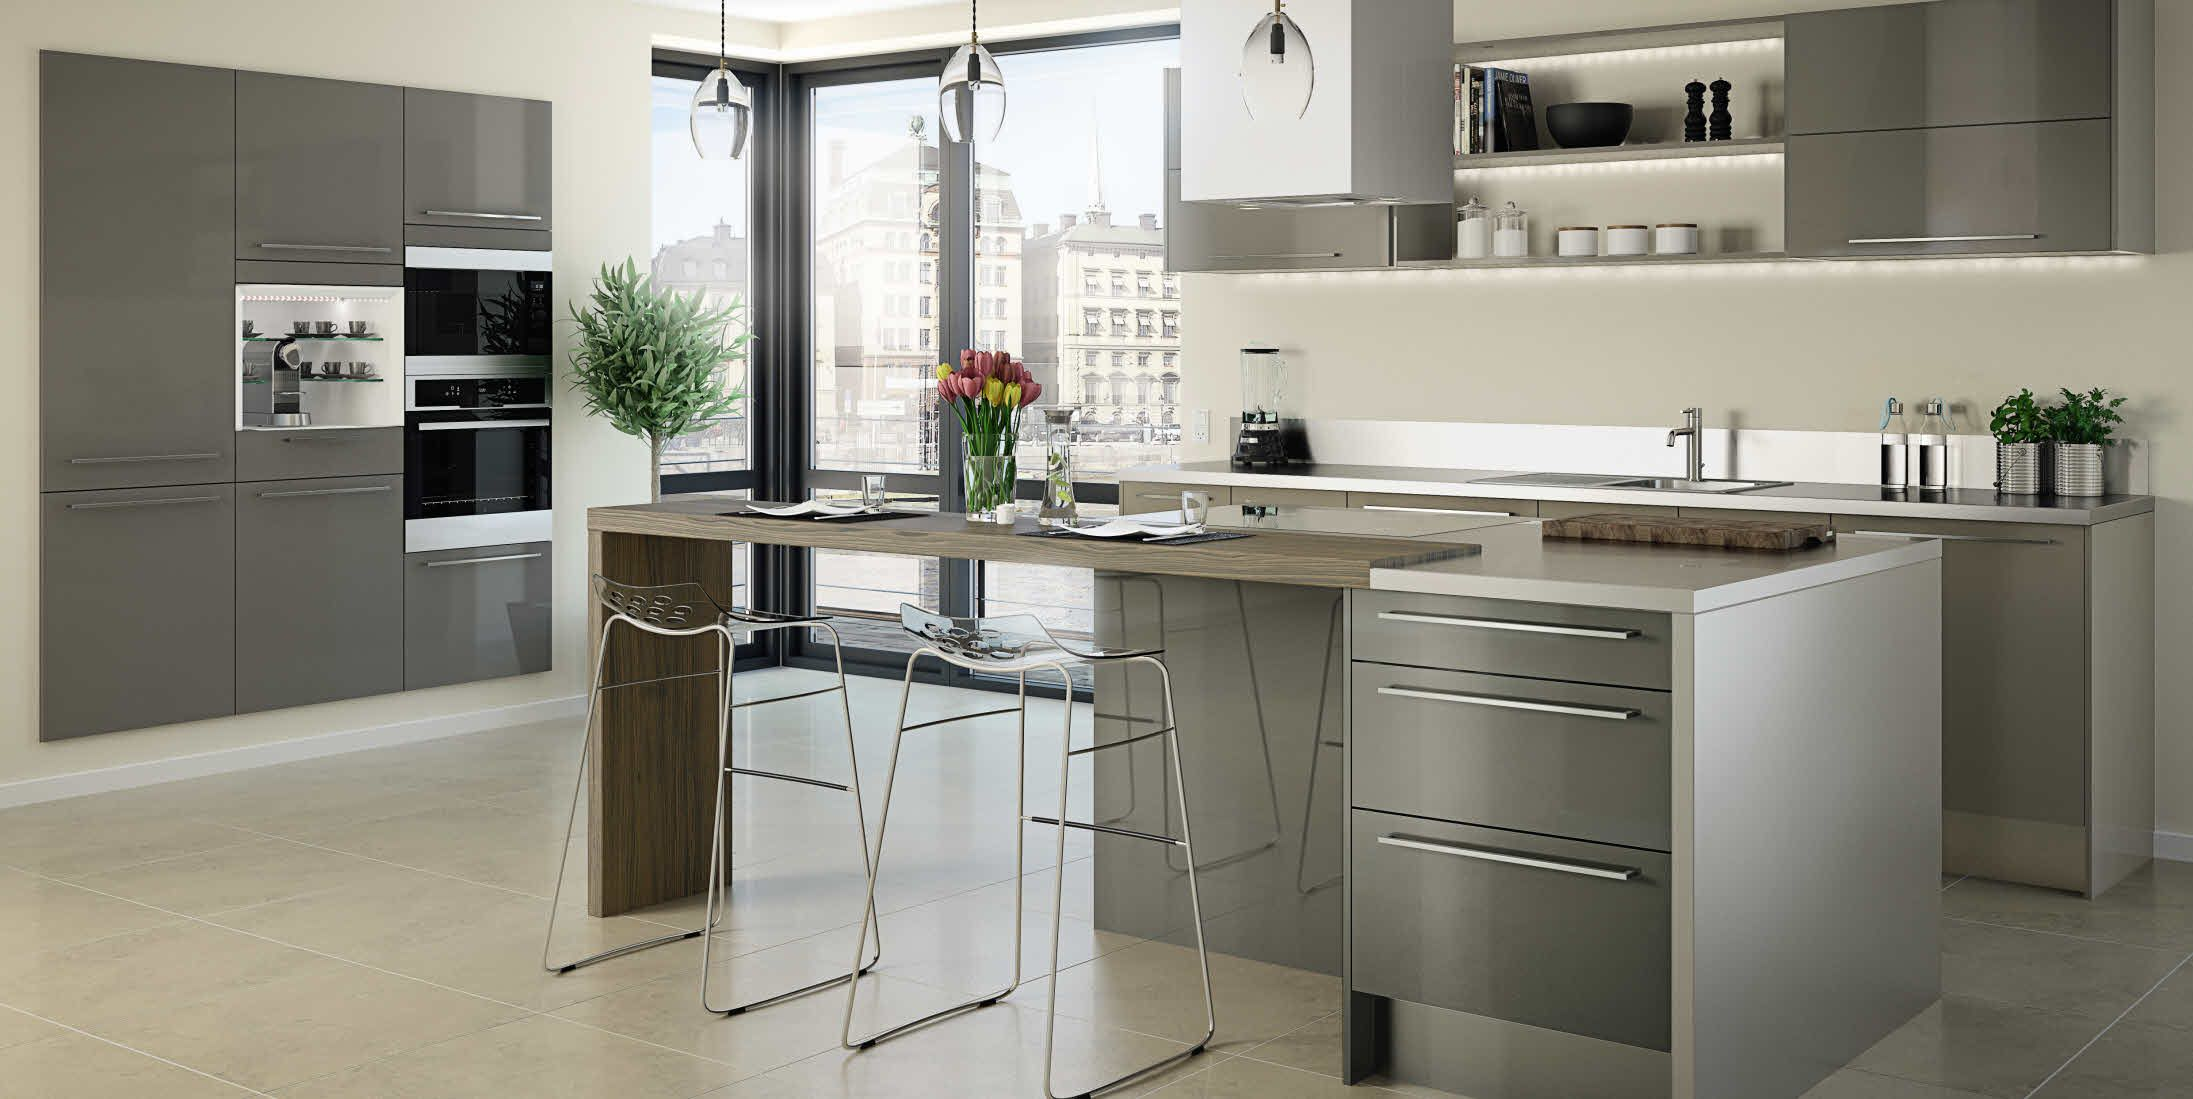 Cuisine Taupe Modele Astral Taupe Hygena Salle A Manger Moderne Cuisine Contemporaine Cuisine Moderne